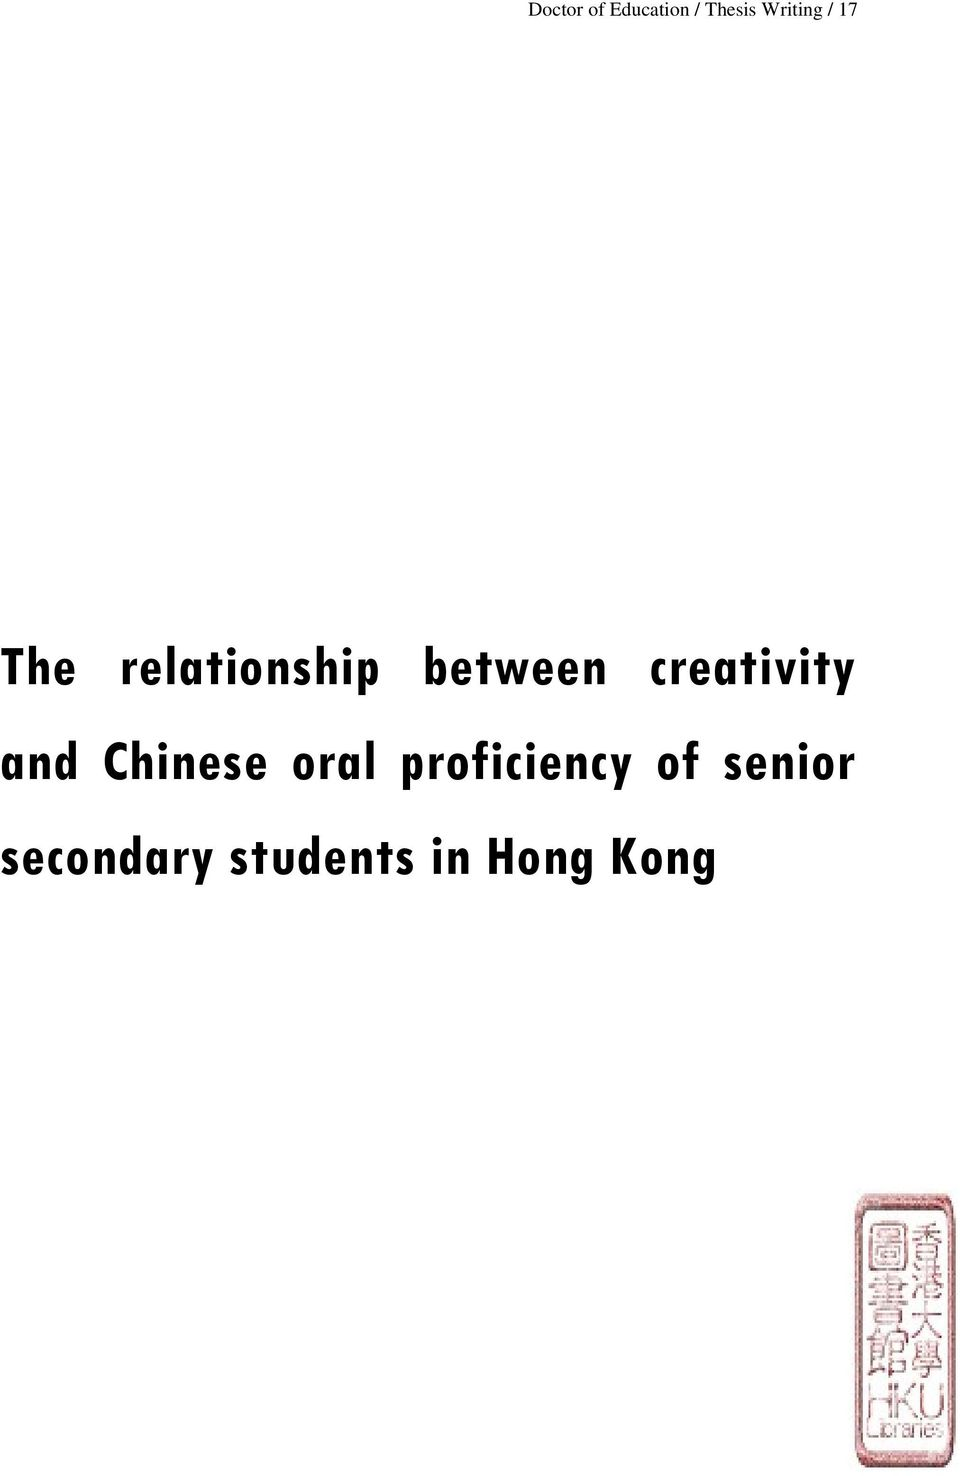 creativity and Chinese oral